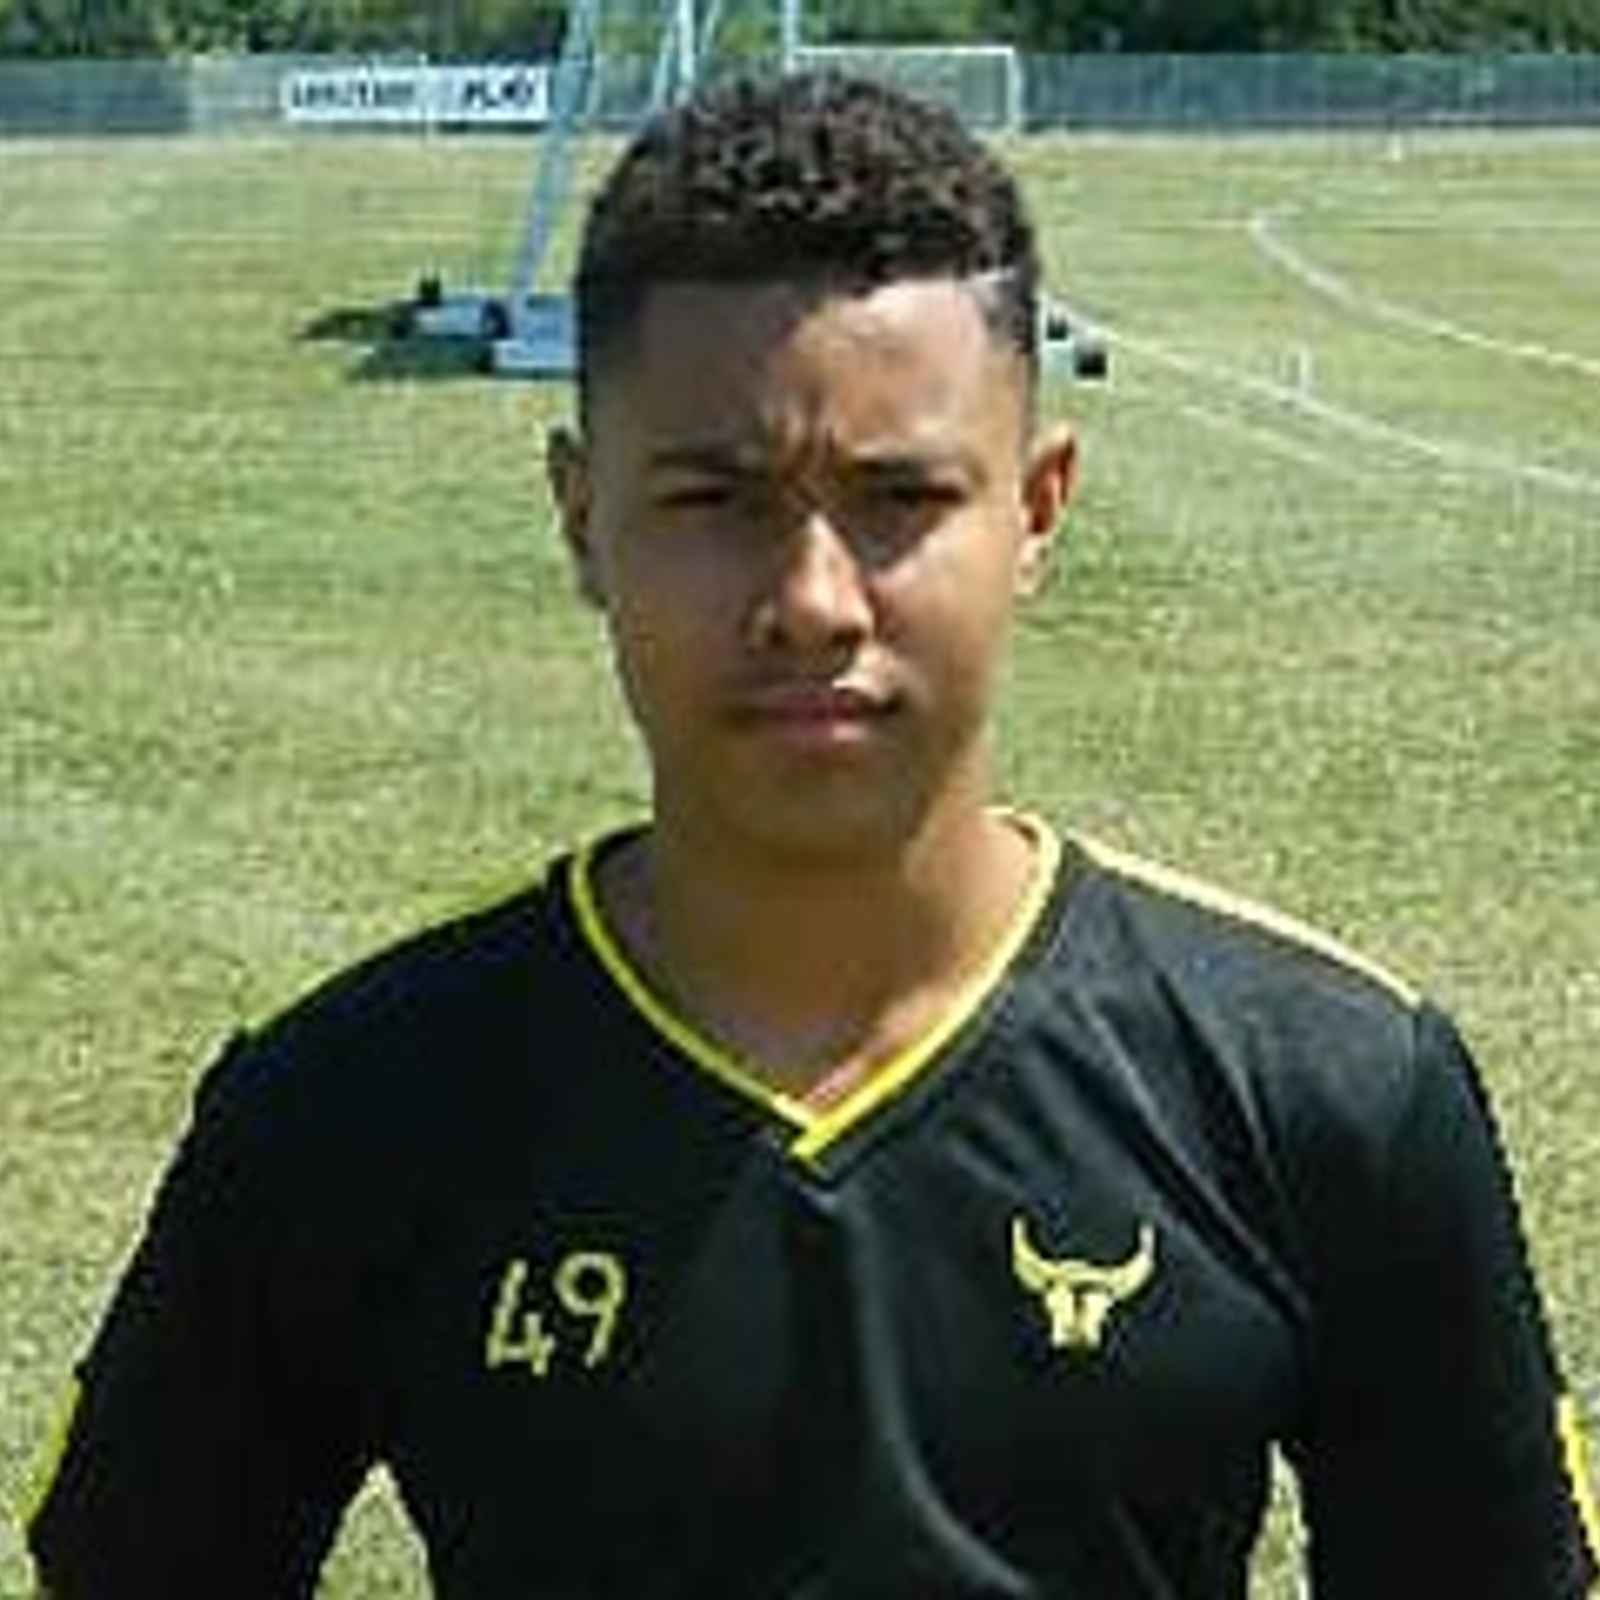 Oxford Youngster Signs On